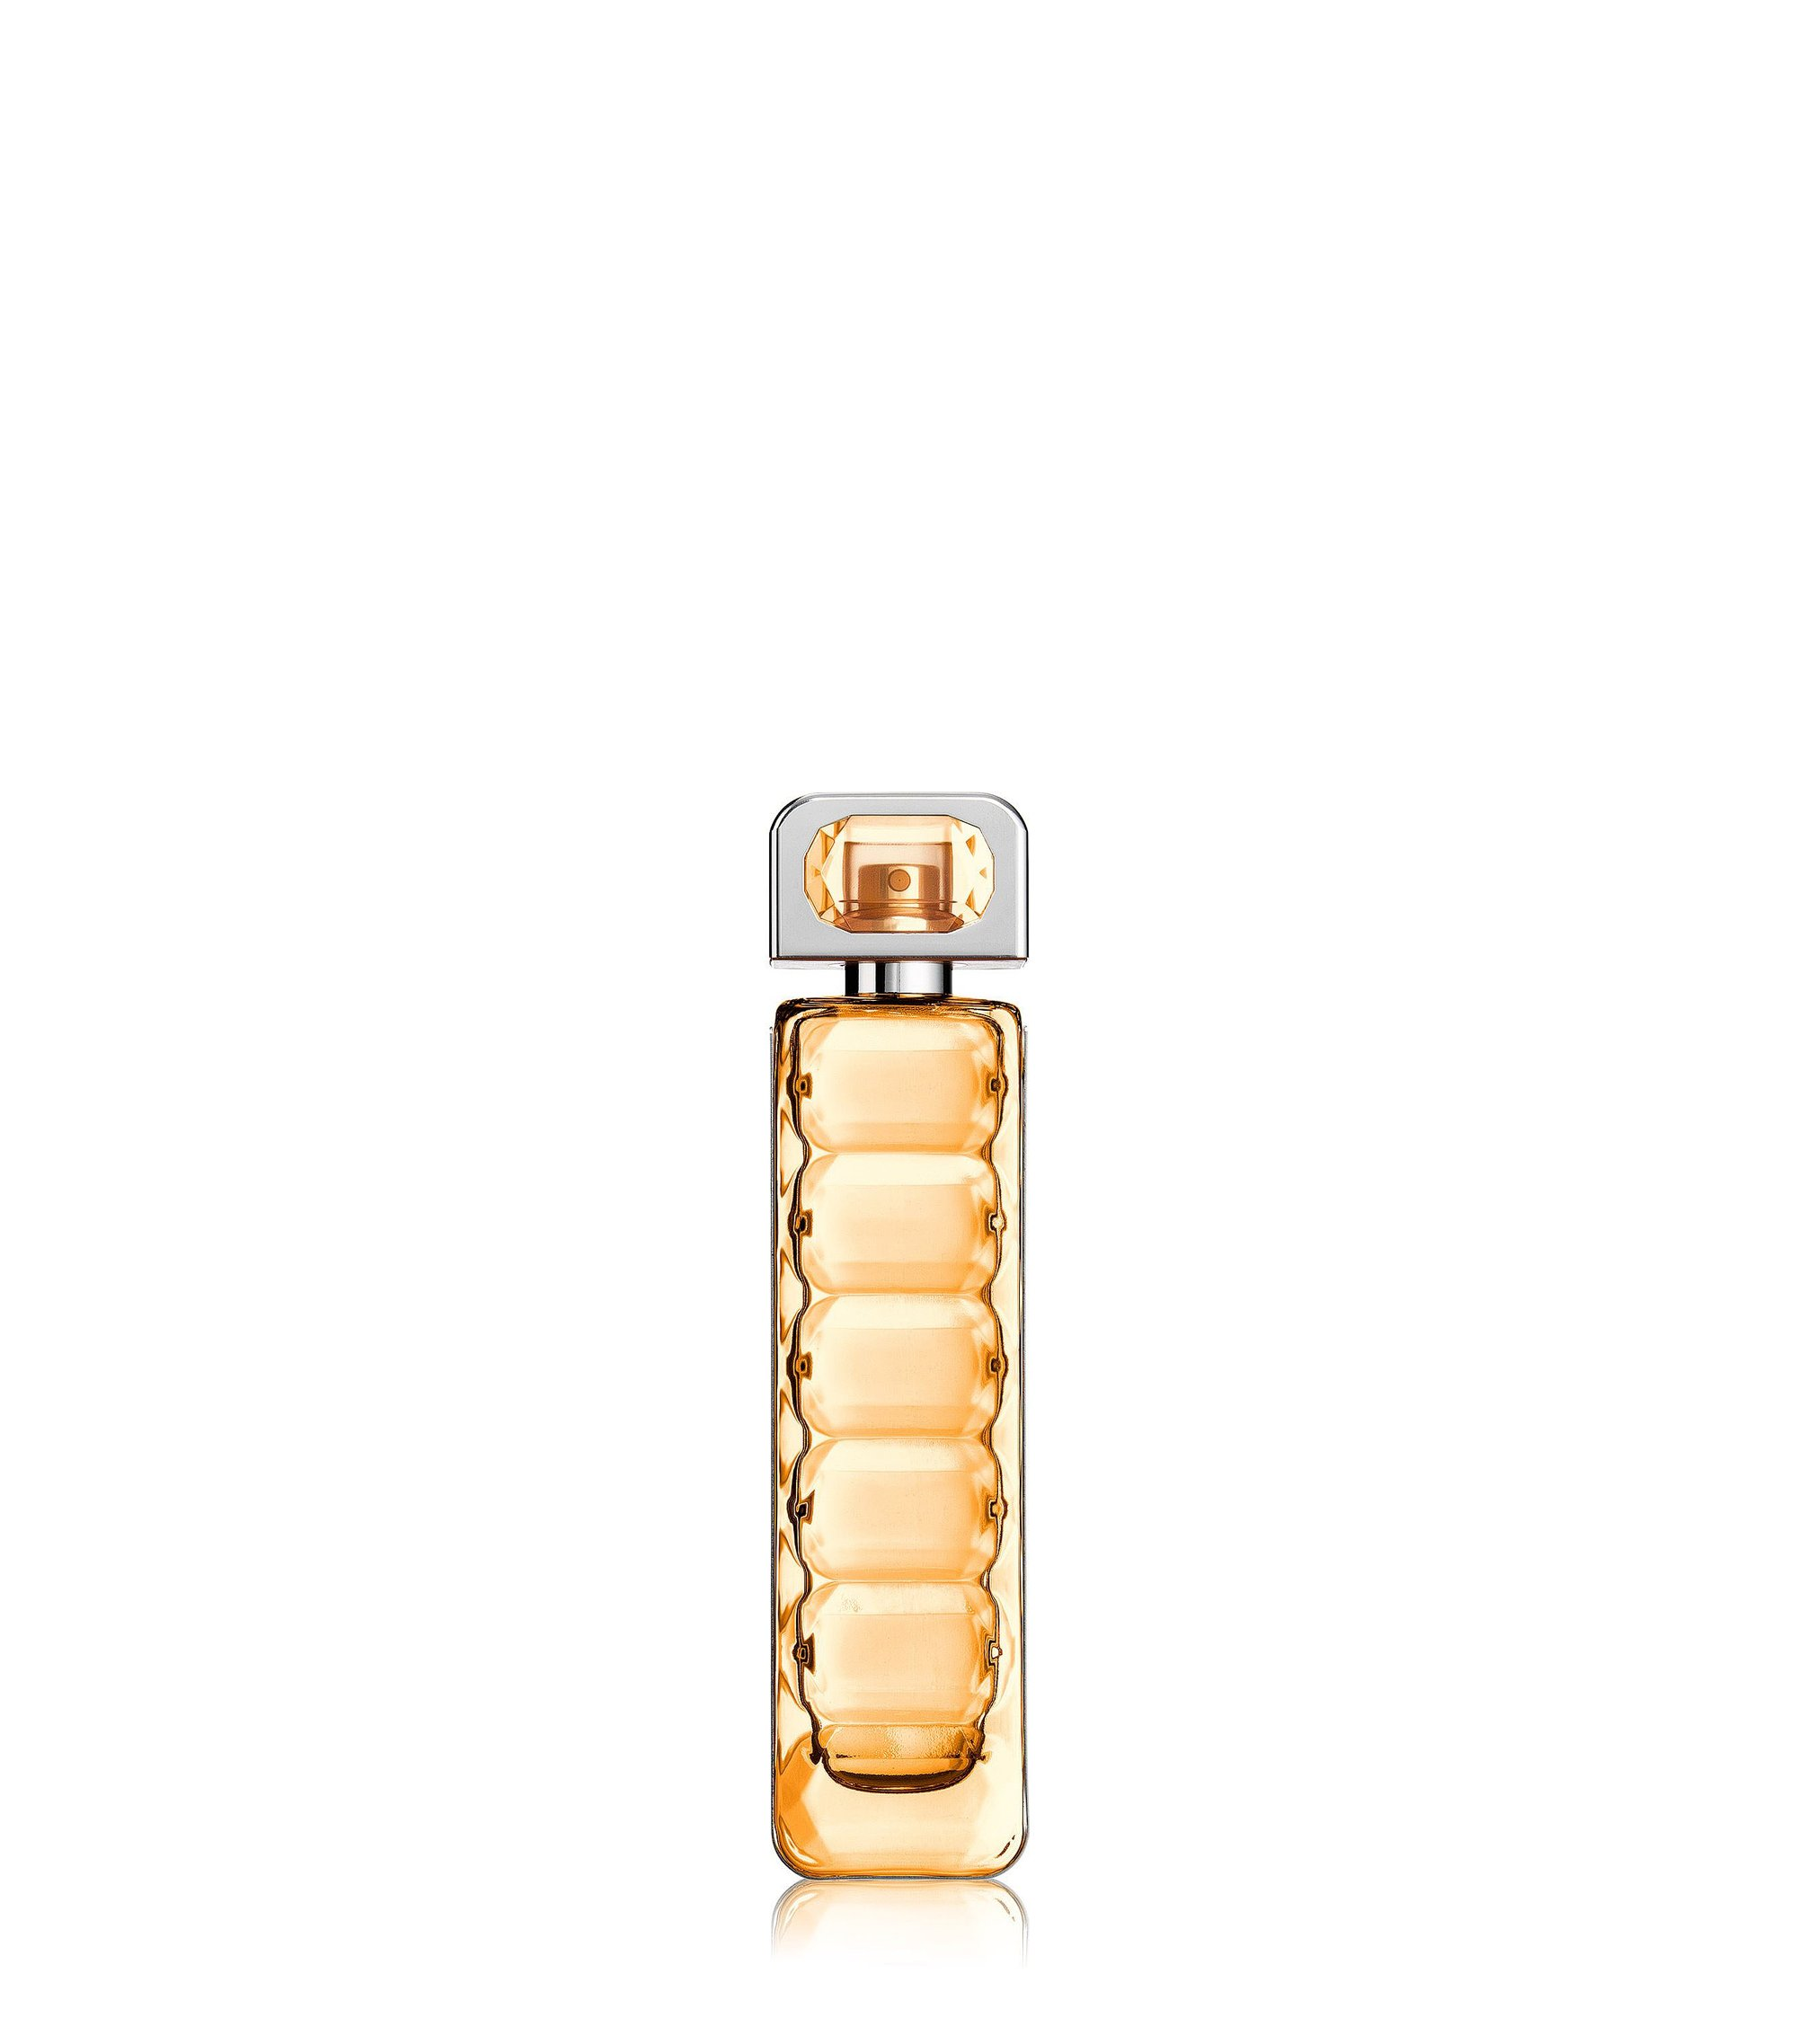 Eau de Toilette BOSS Orange, 50 ml, Assorted-Pre-Pack